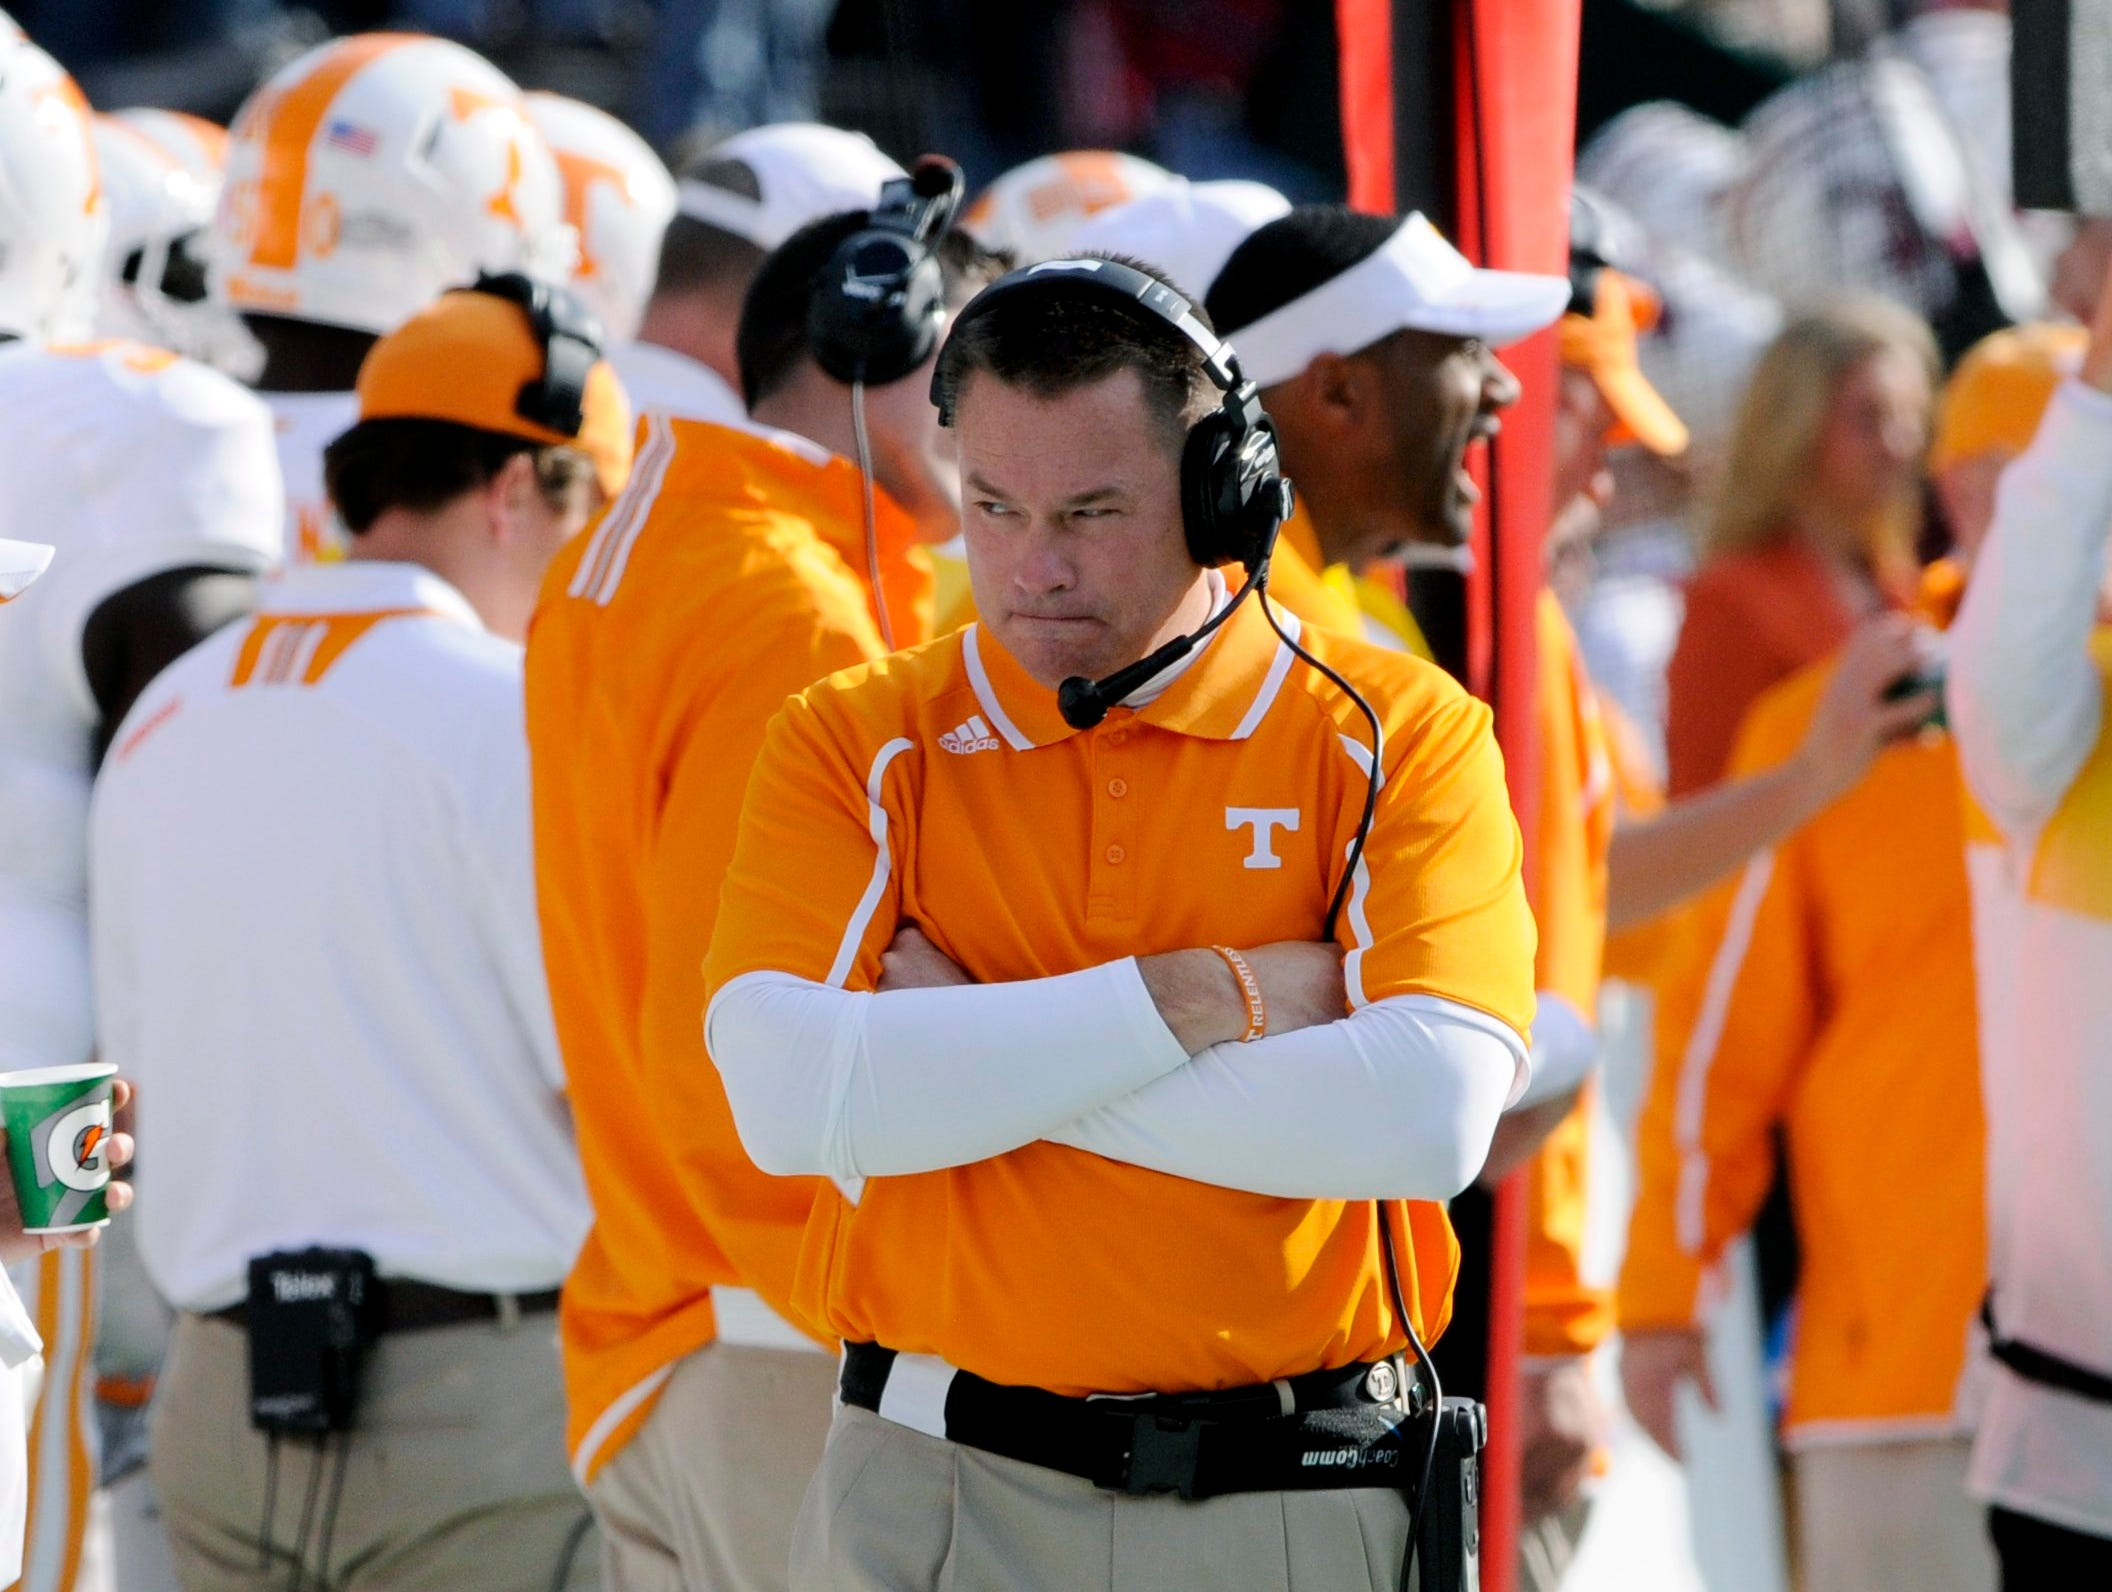 Tennessee head coach Butch Jones was not happy with their first half effort against Alabama Saturday, Oct. 26, 2013 at Bryant-Denny Stadium in Tuscaloosa, Ala.